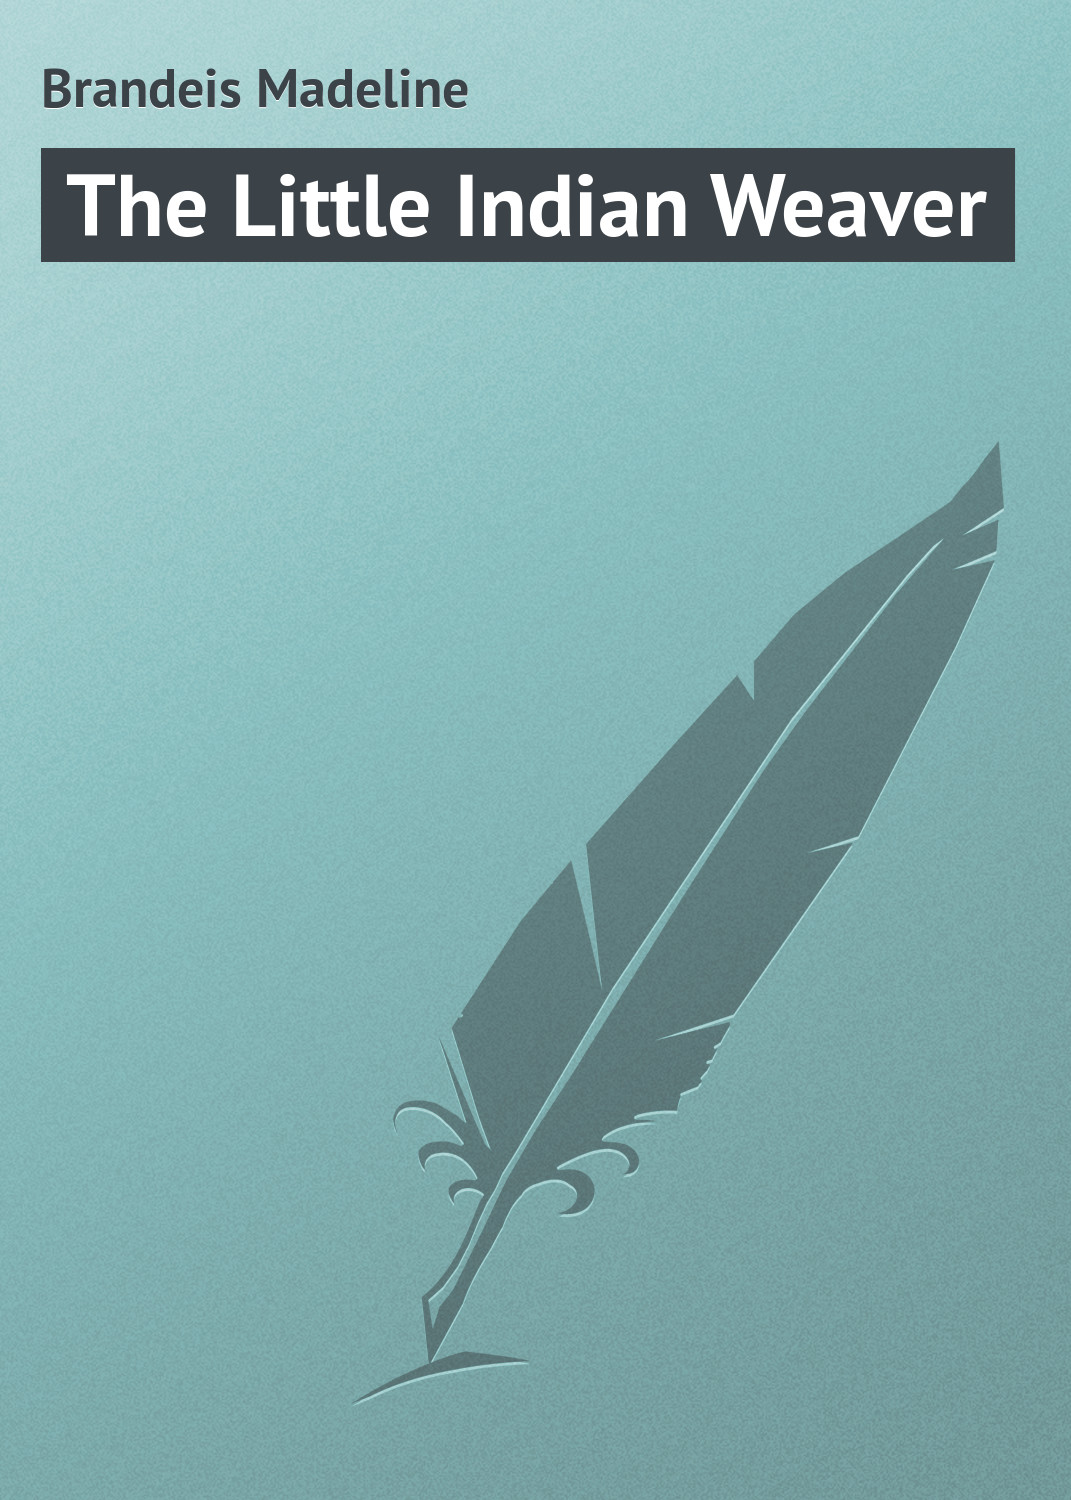 лучшая цена Brandeis Madeline The Little Indian Weaver